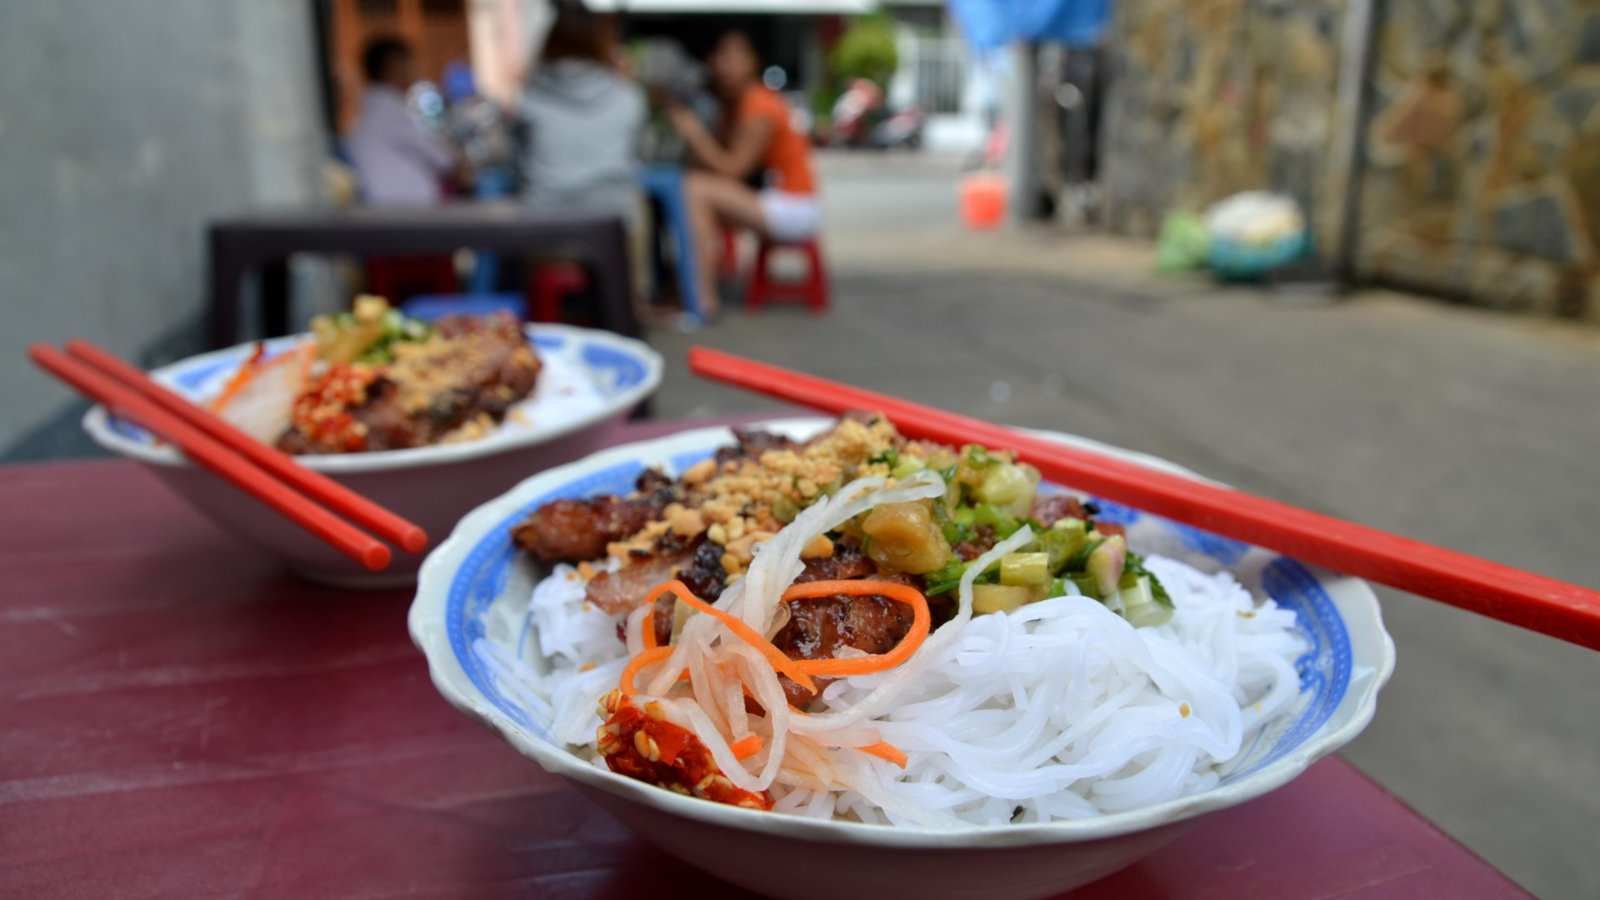 Bun Thit Nuong is a yummy traditional Vietnamese dish you can try in Saigon